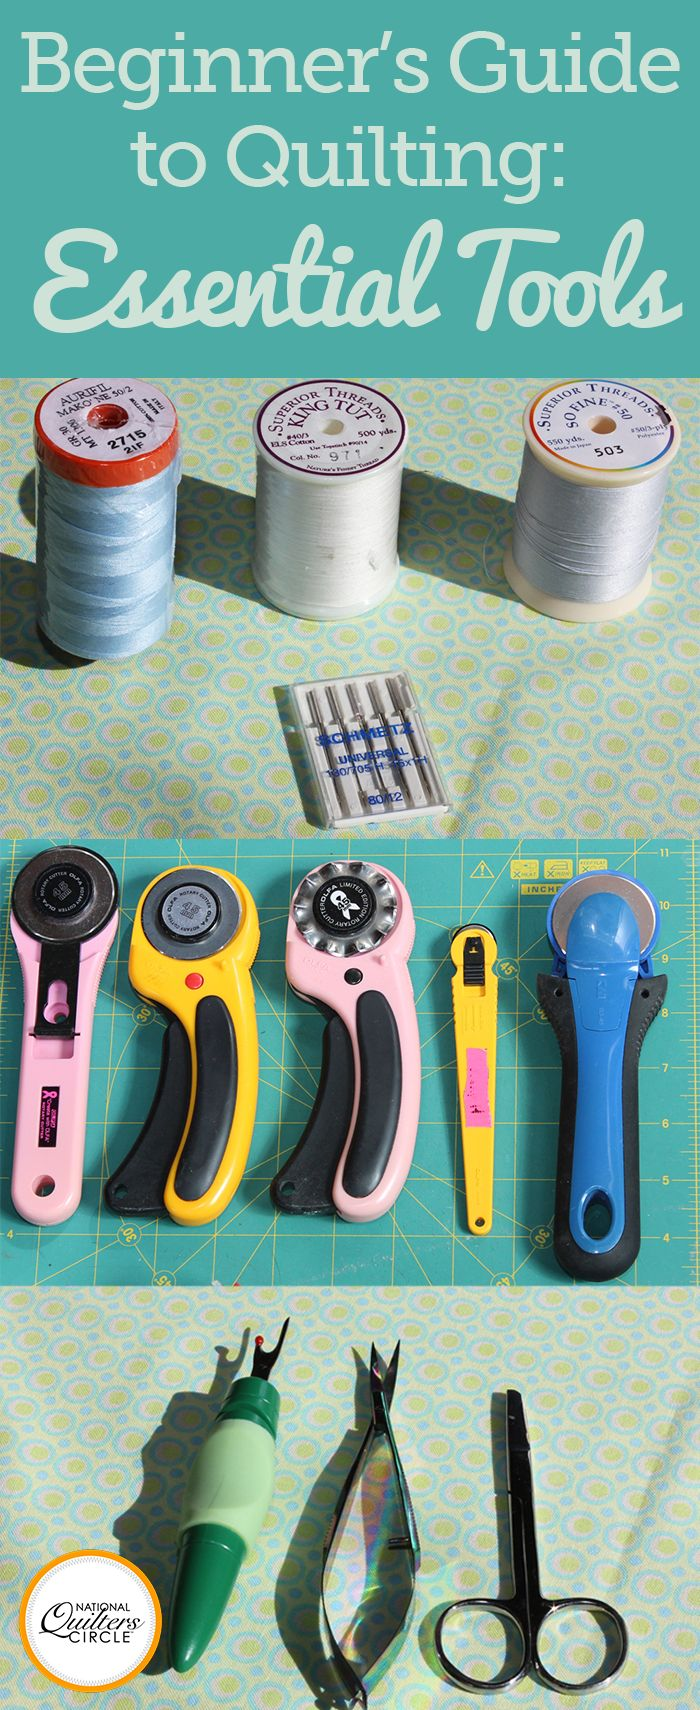 151 best Quilting Tools images on Pinterest | Stitching, Desk and ... : quilting tools and supplies - Adamdwight.com